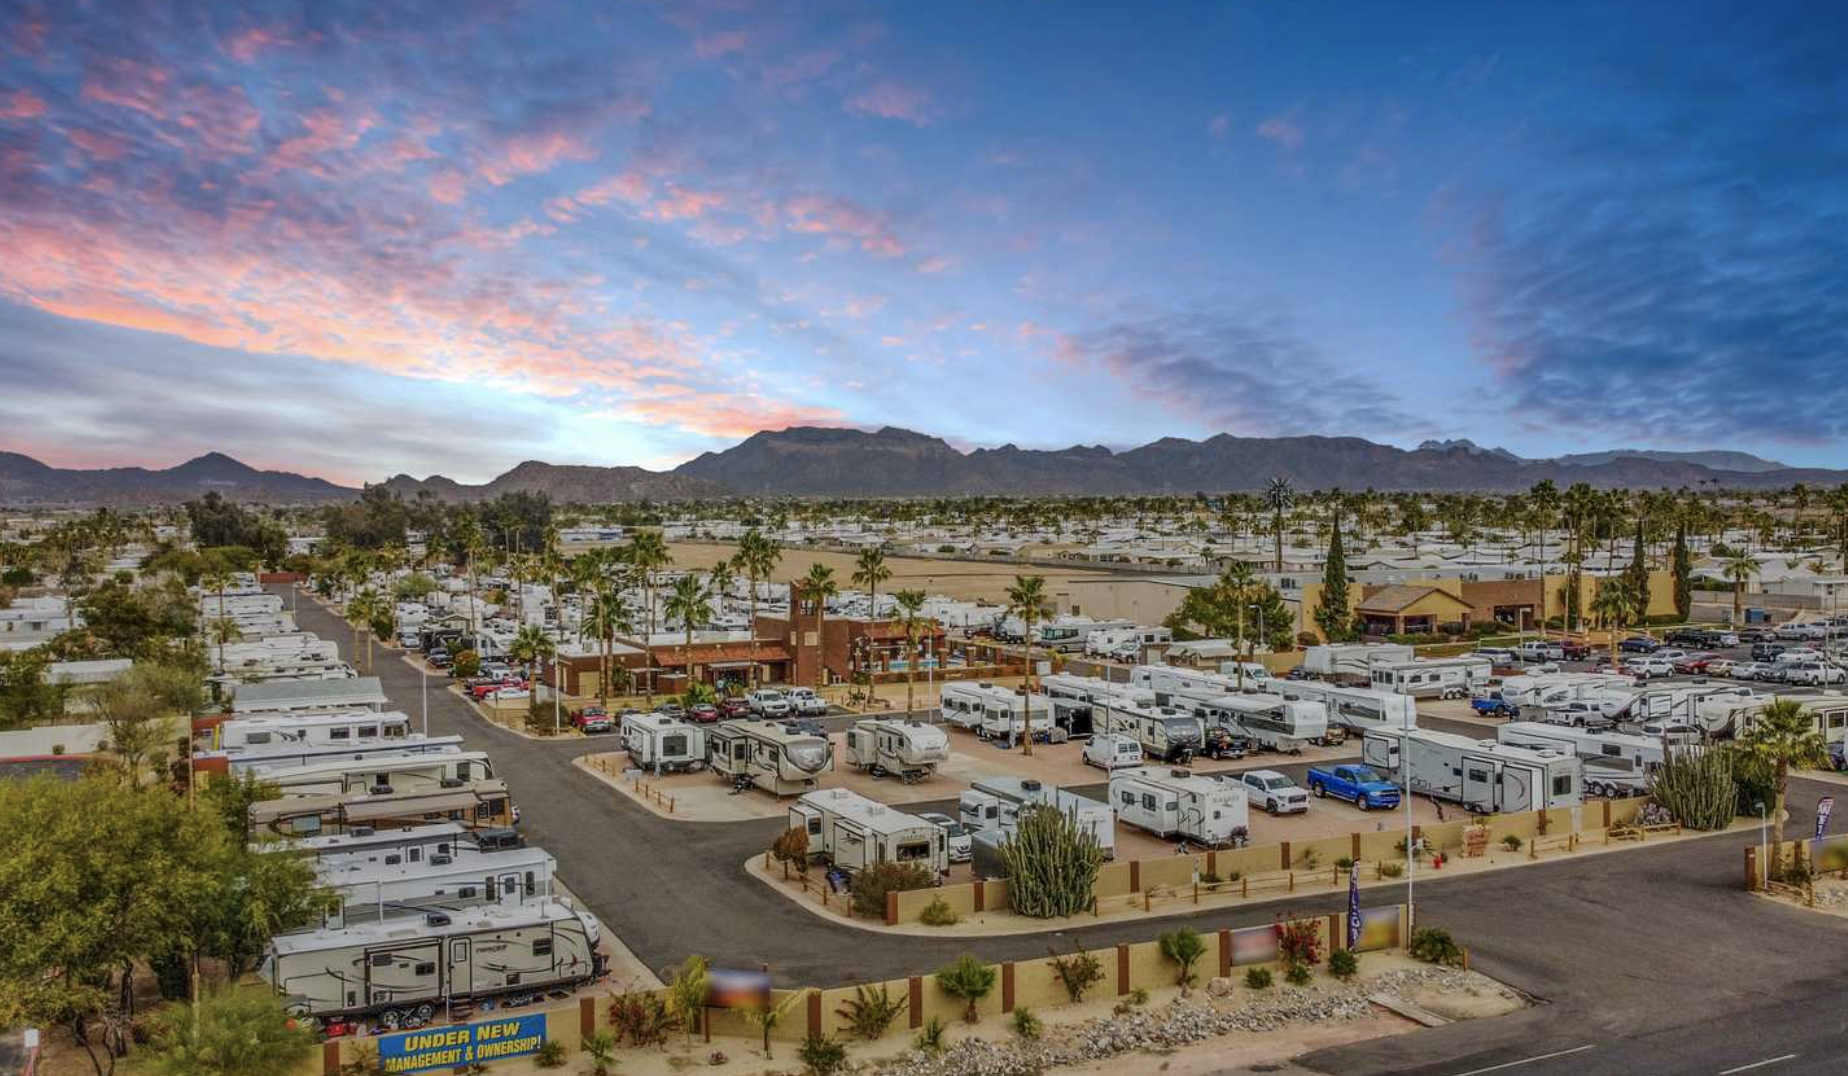 Colorful sunset at RV park with RVs and palm trees - mountains in the distance